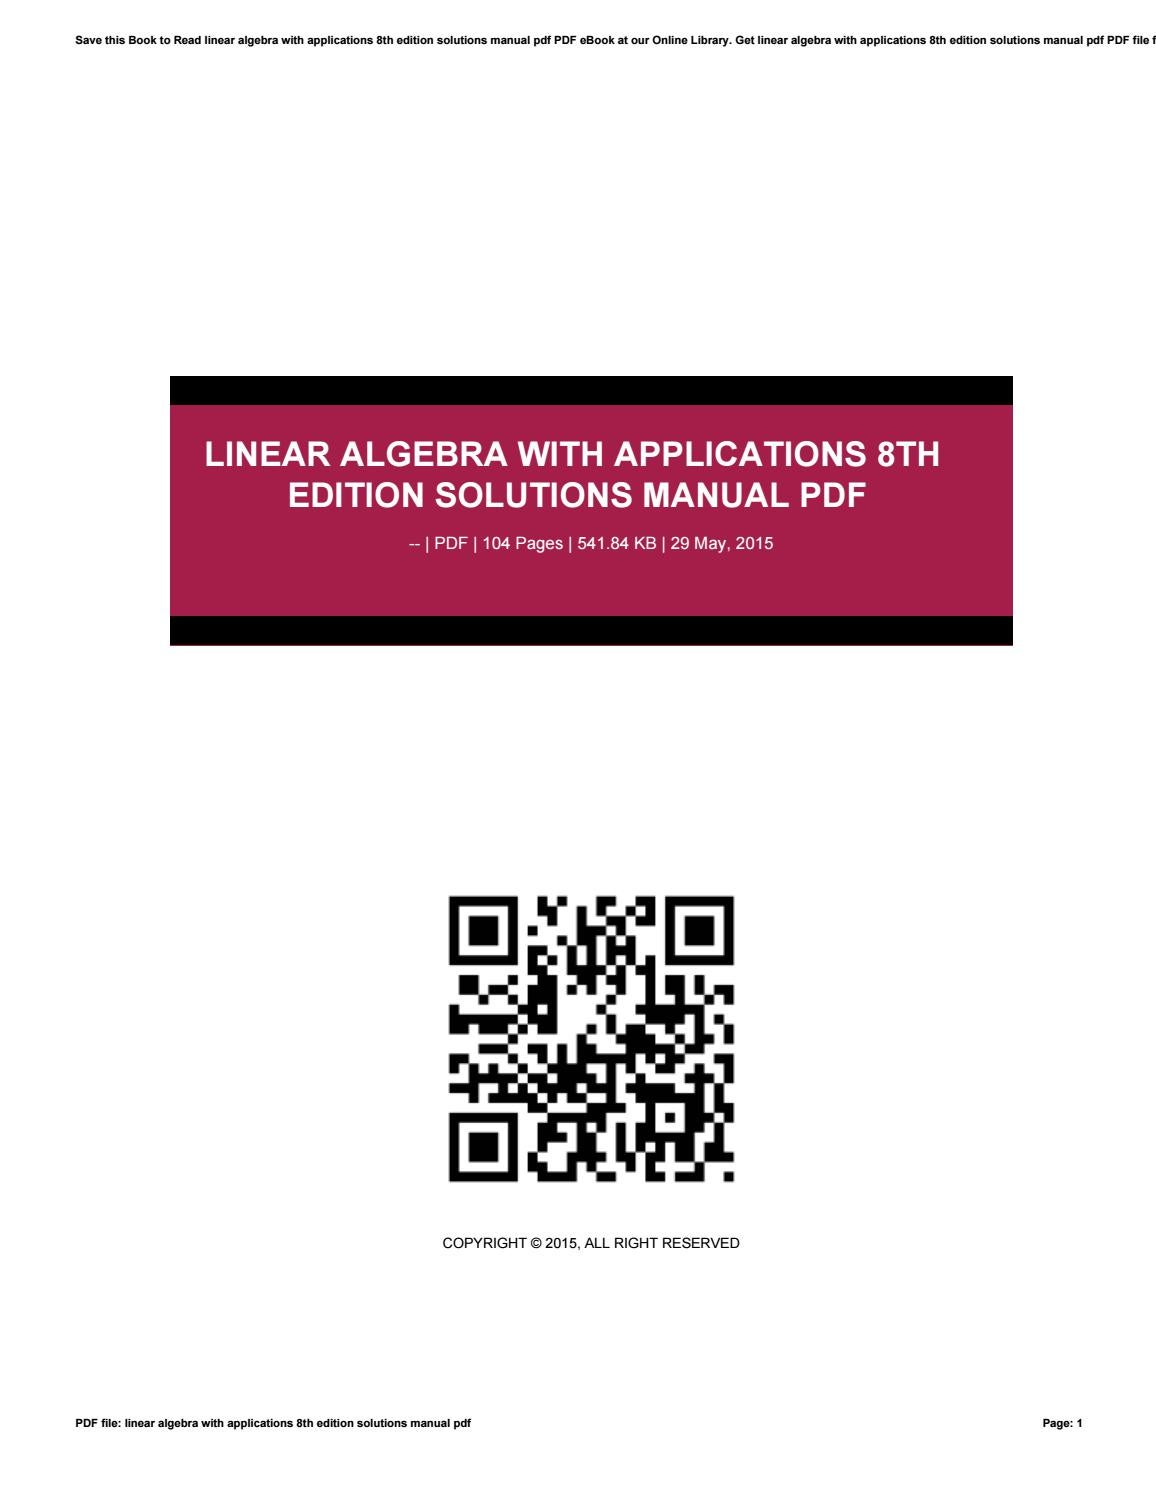 Linear algebra with applications 8th edition solutions manual pdf by  tvchd33 - issuu